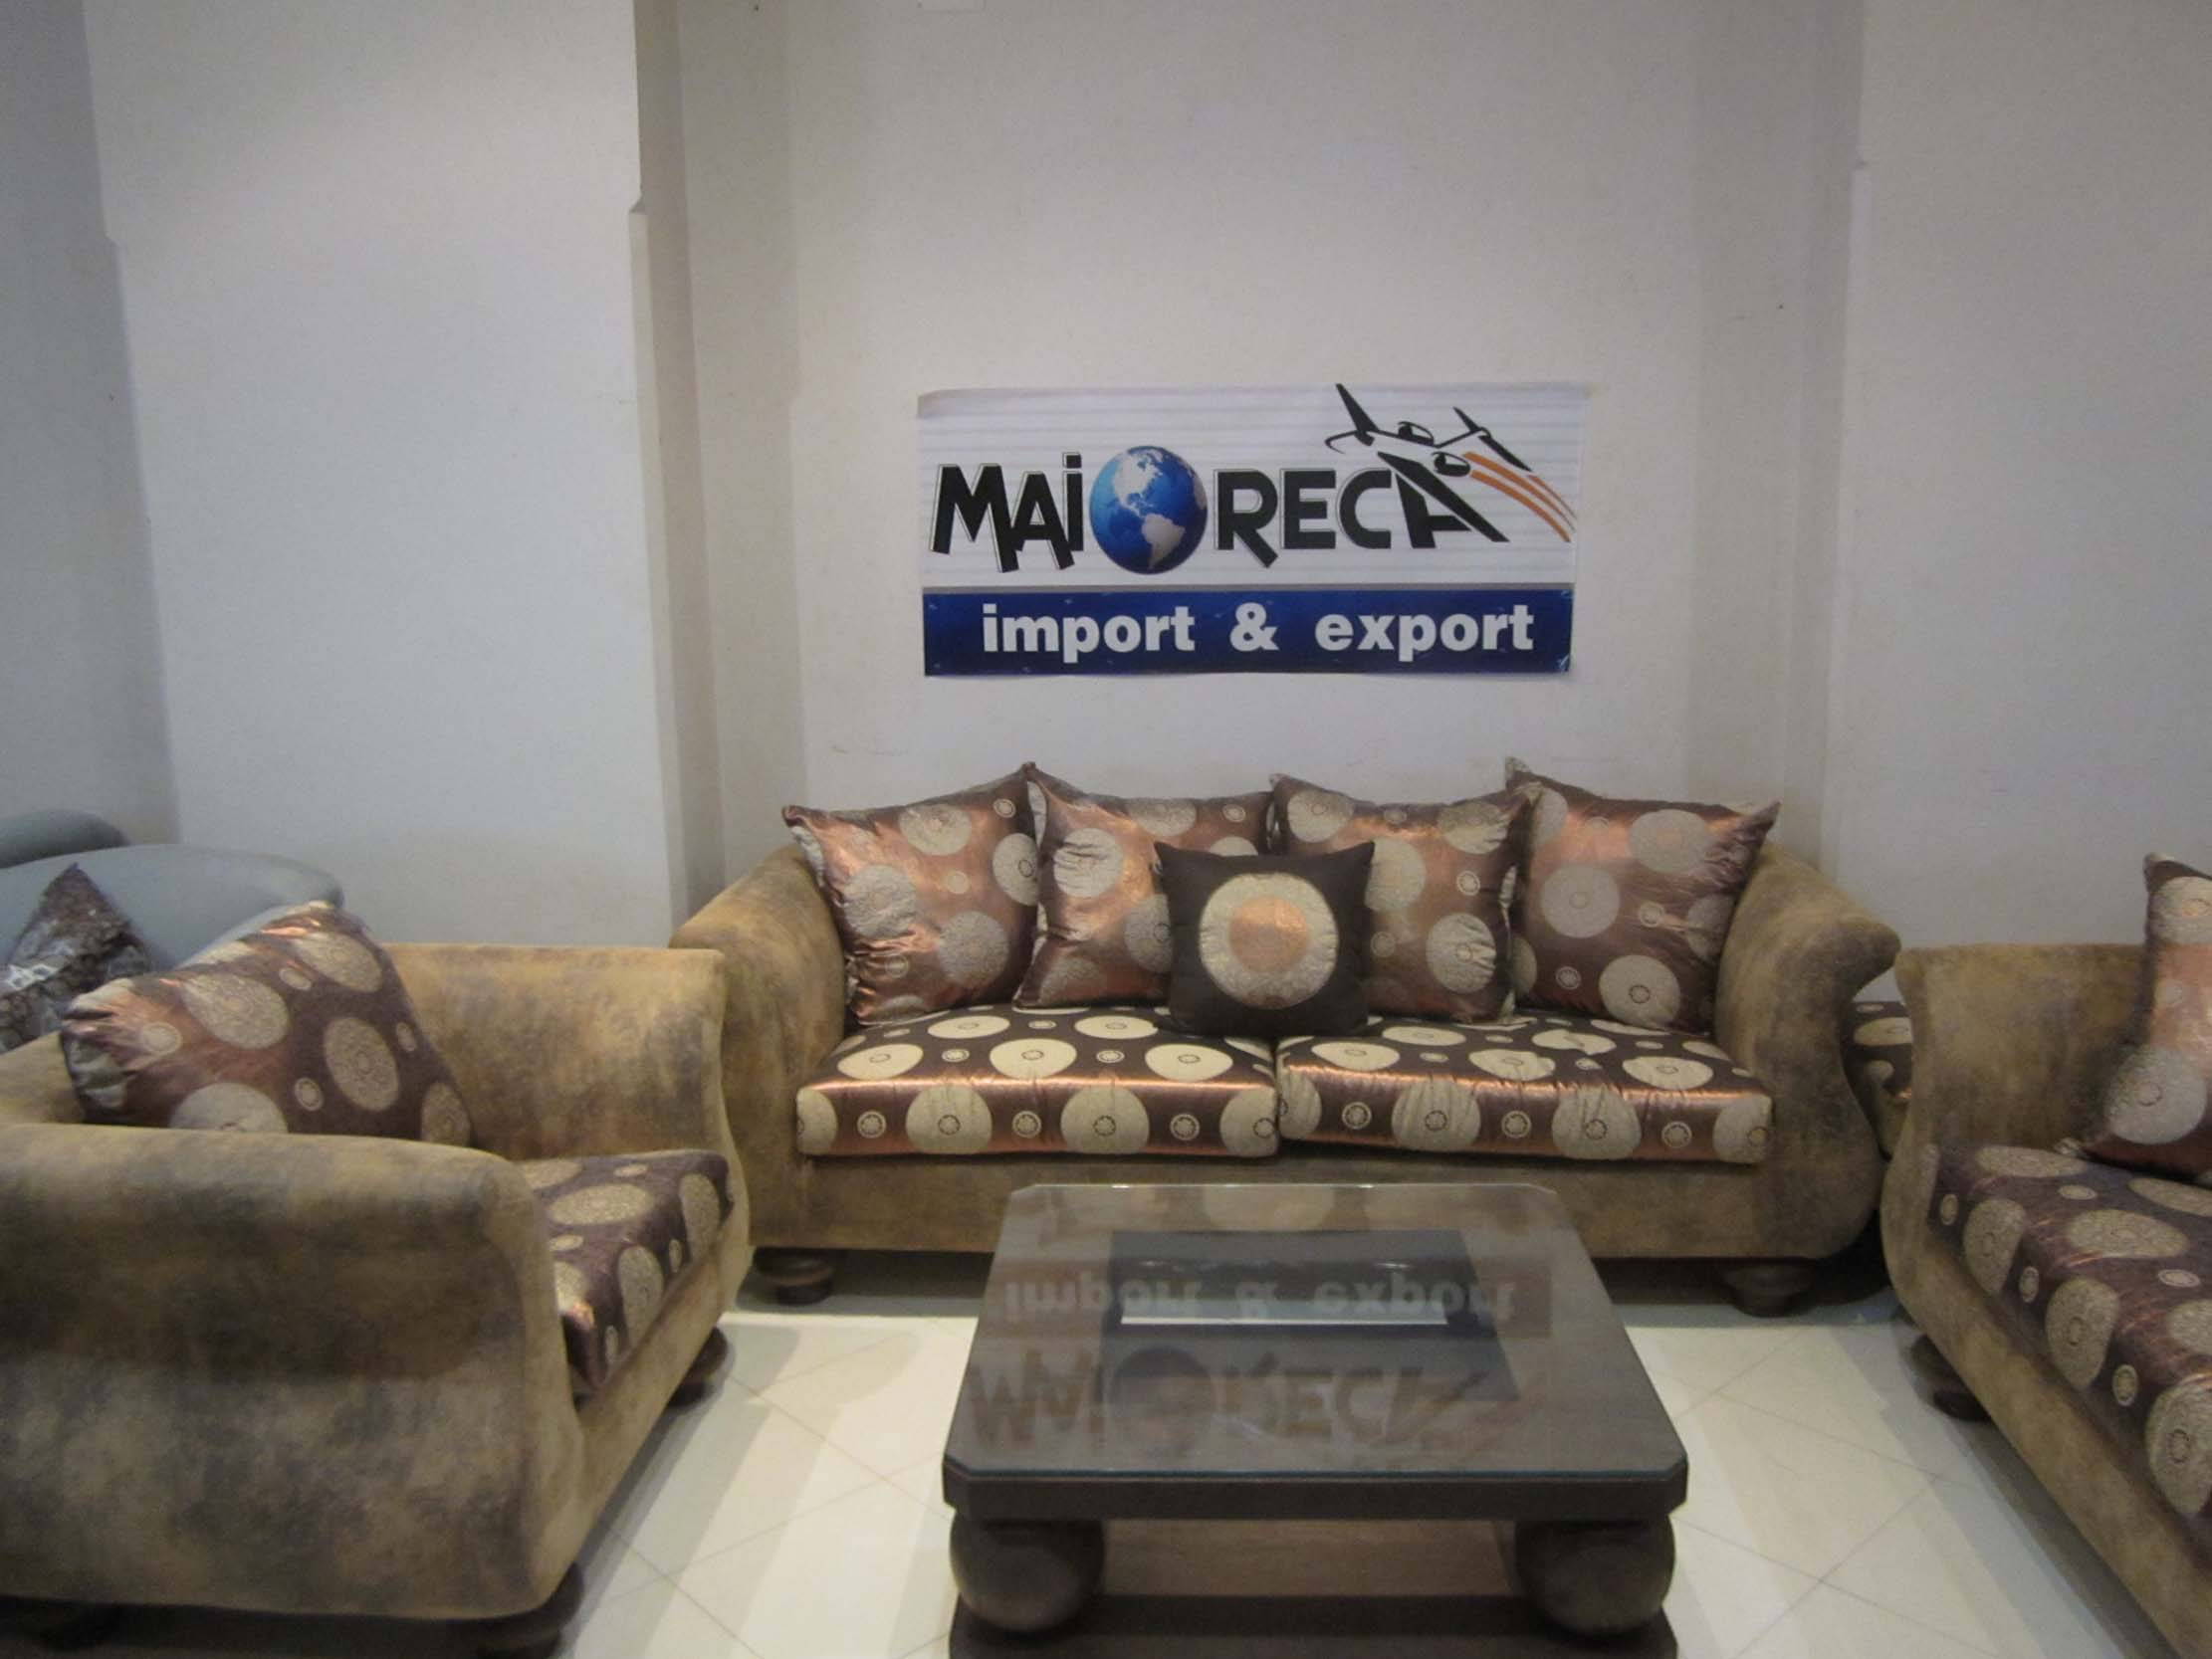 Sofa For Sale In Yanbu Sofa Set Buy From Maioreca For Import And Export Co Egypt